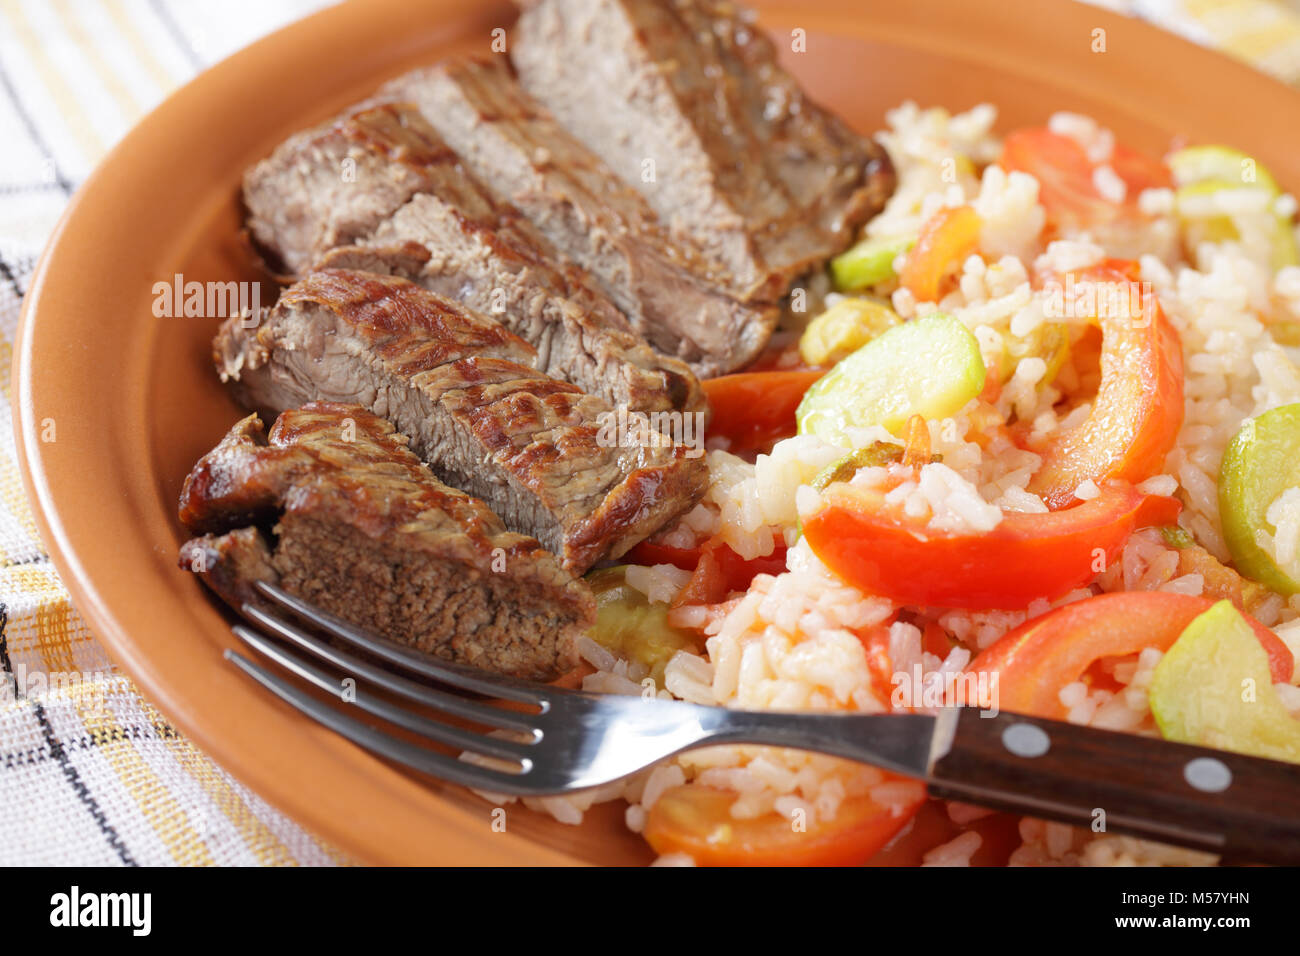 Sliced beef steak with rice and vegetables - Stock Image